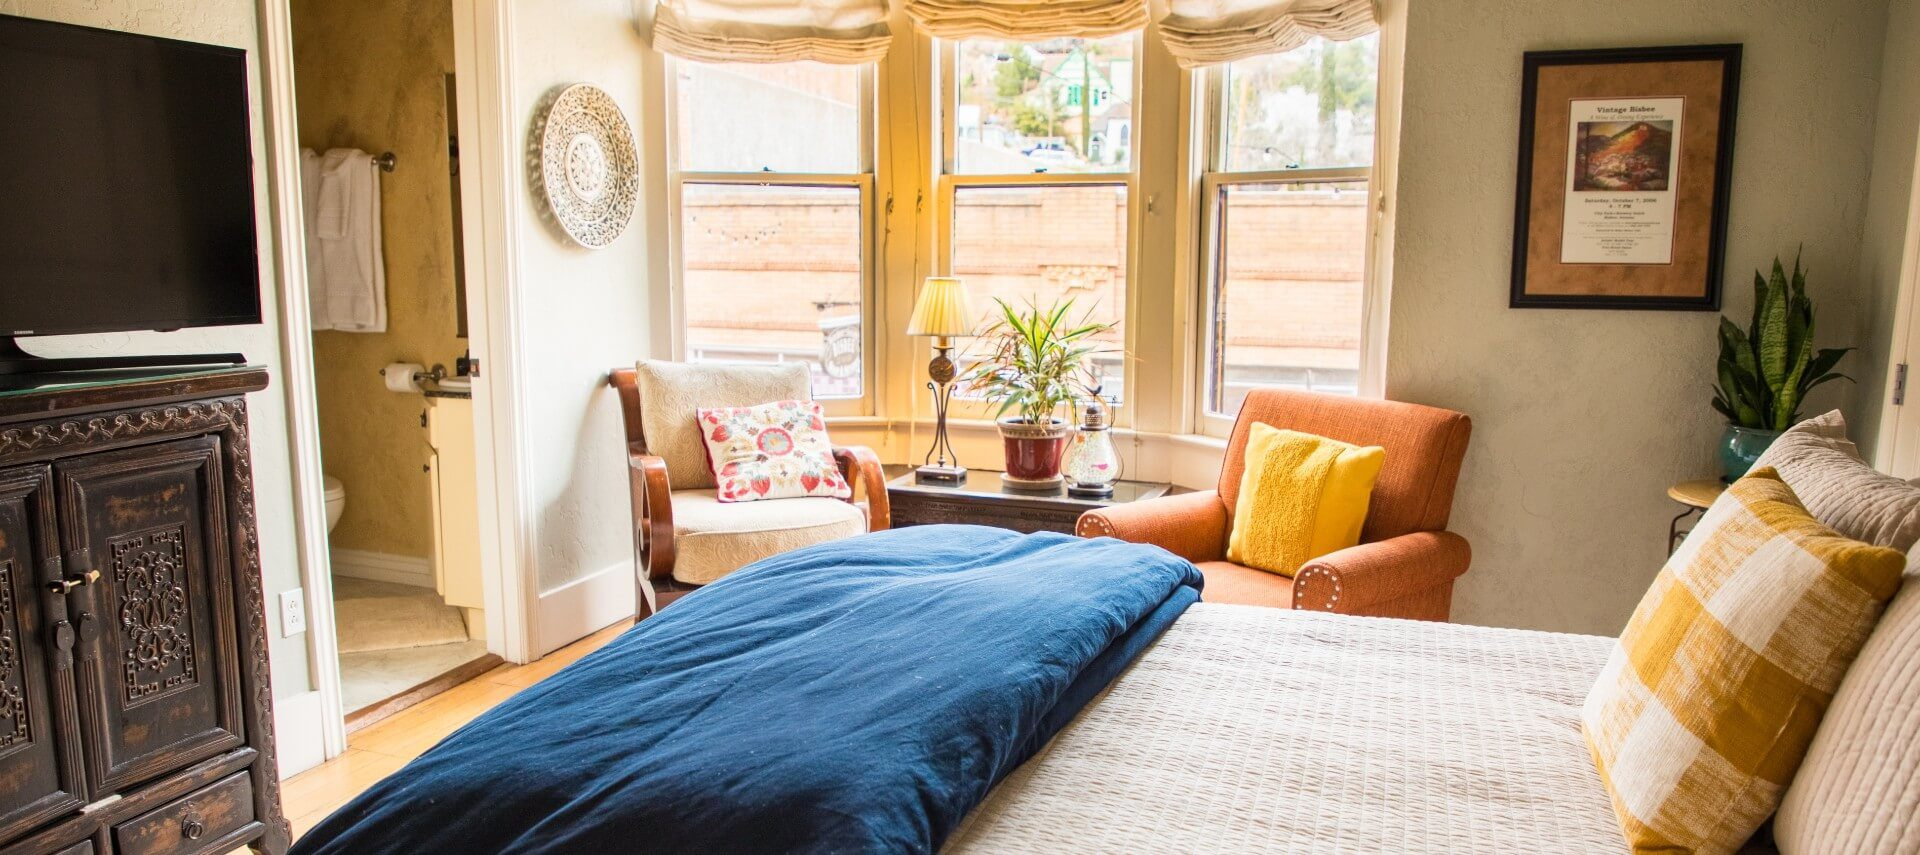 Luxurious suite with bed, orange sitting chairs, decorative armoire and doorway into bathroom